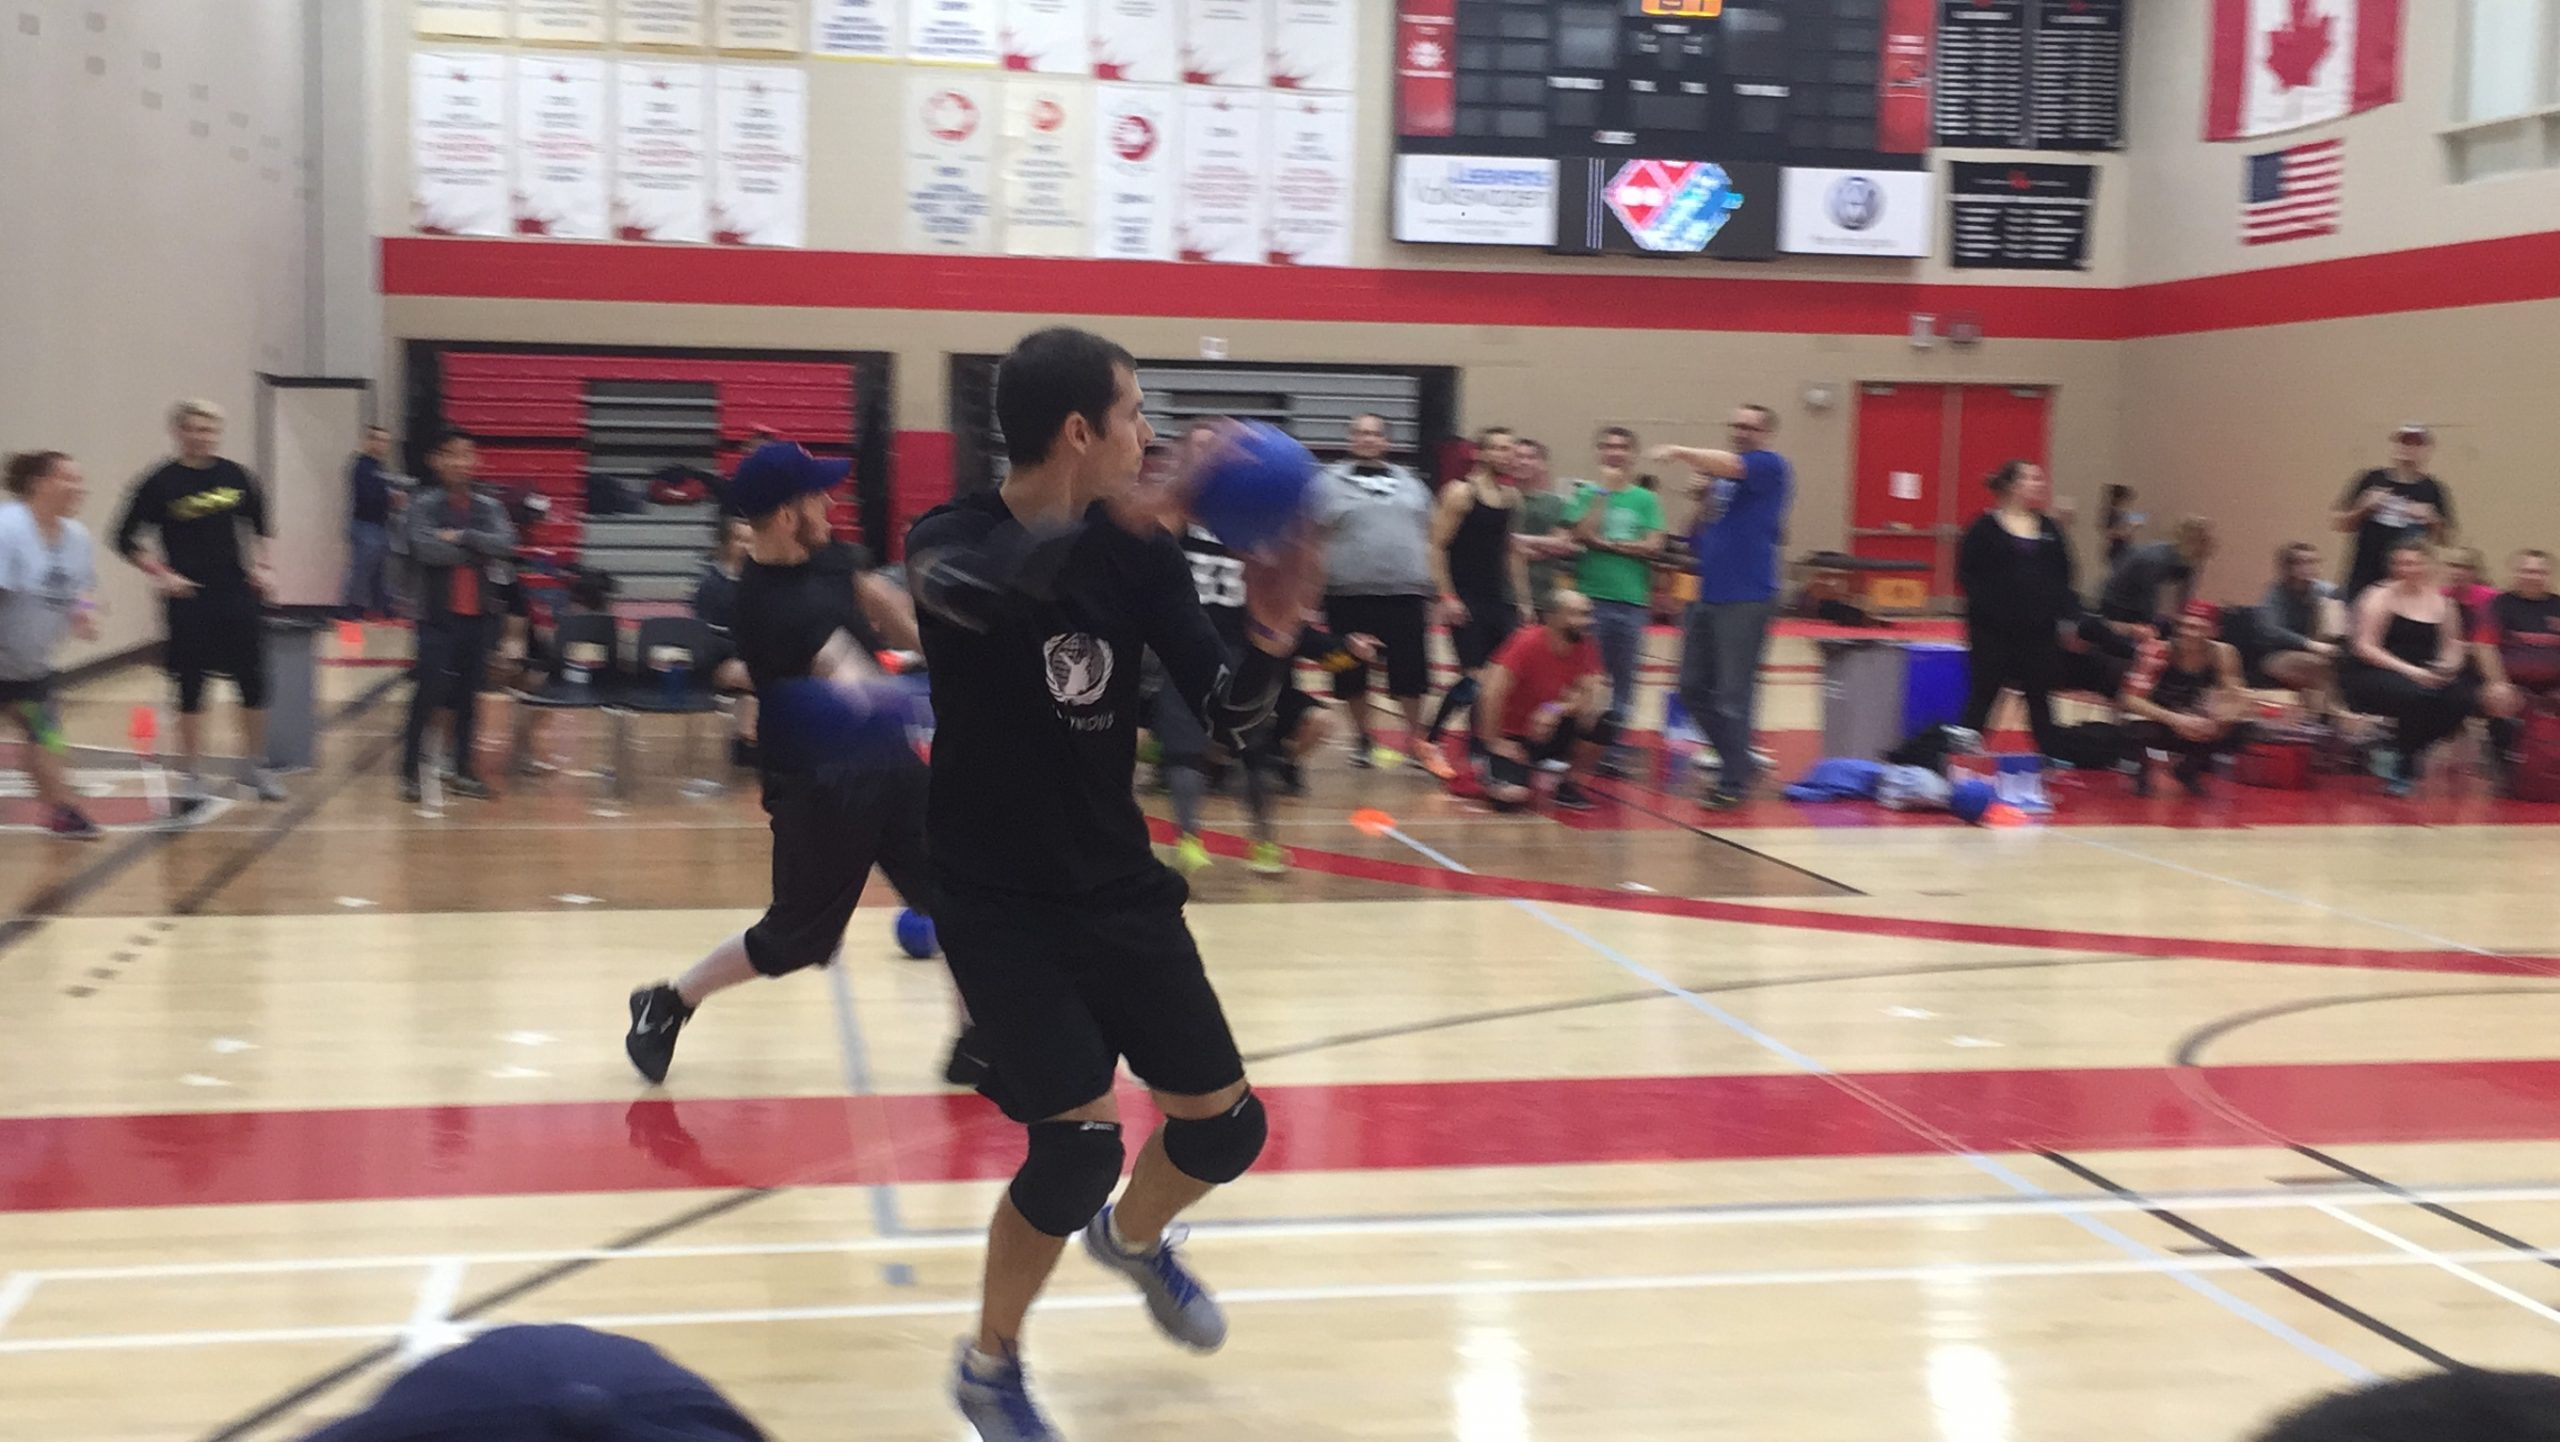 Dodgeball tournament shows it's more than just a gym class game